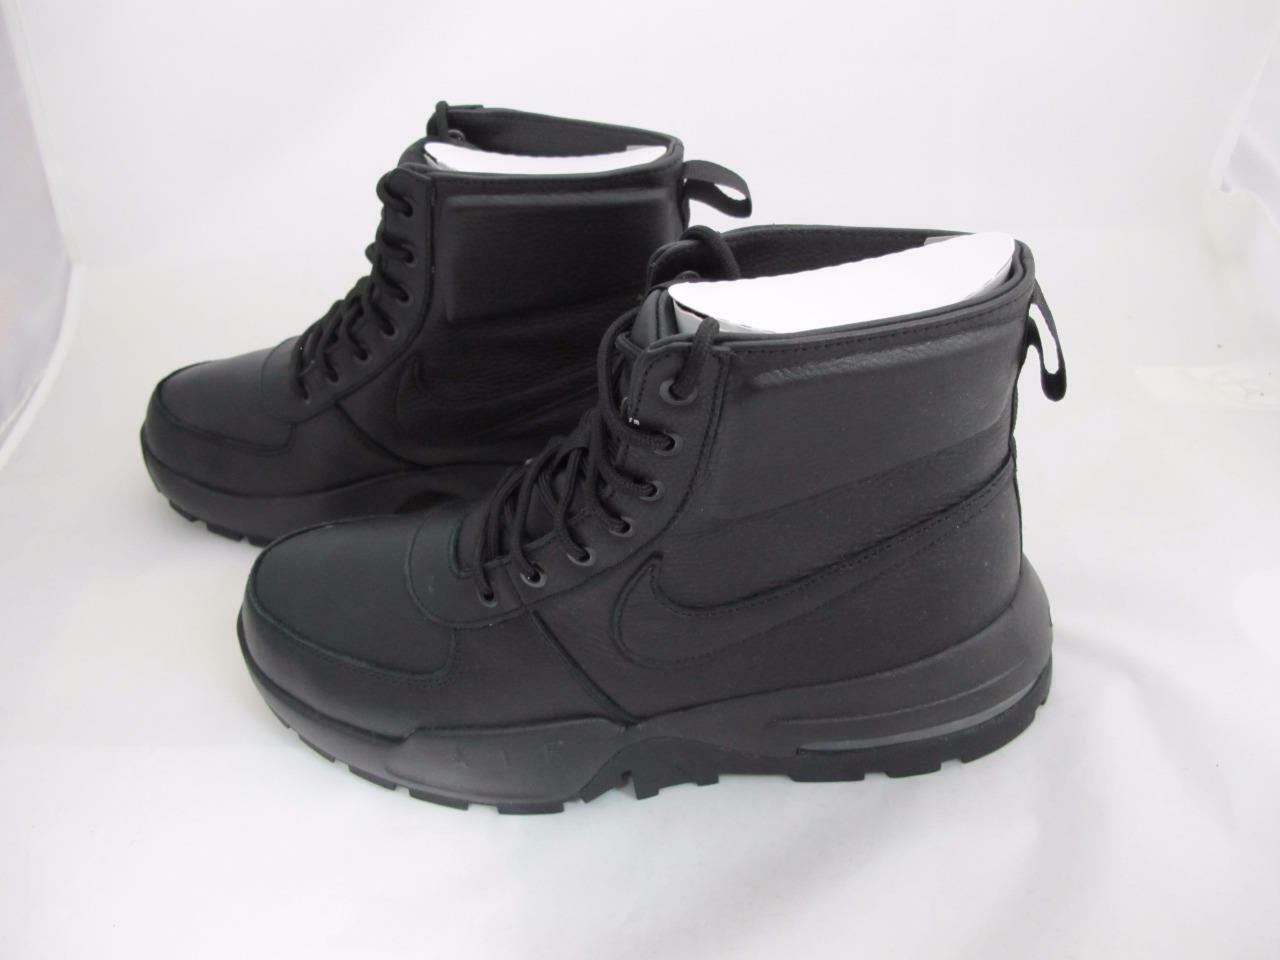 new style 80d1a a453d NEW MEN S NIKE AIR MAX GOATERRA 2.0 916816-001 916816-001 916816-001